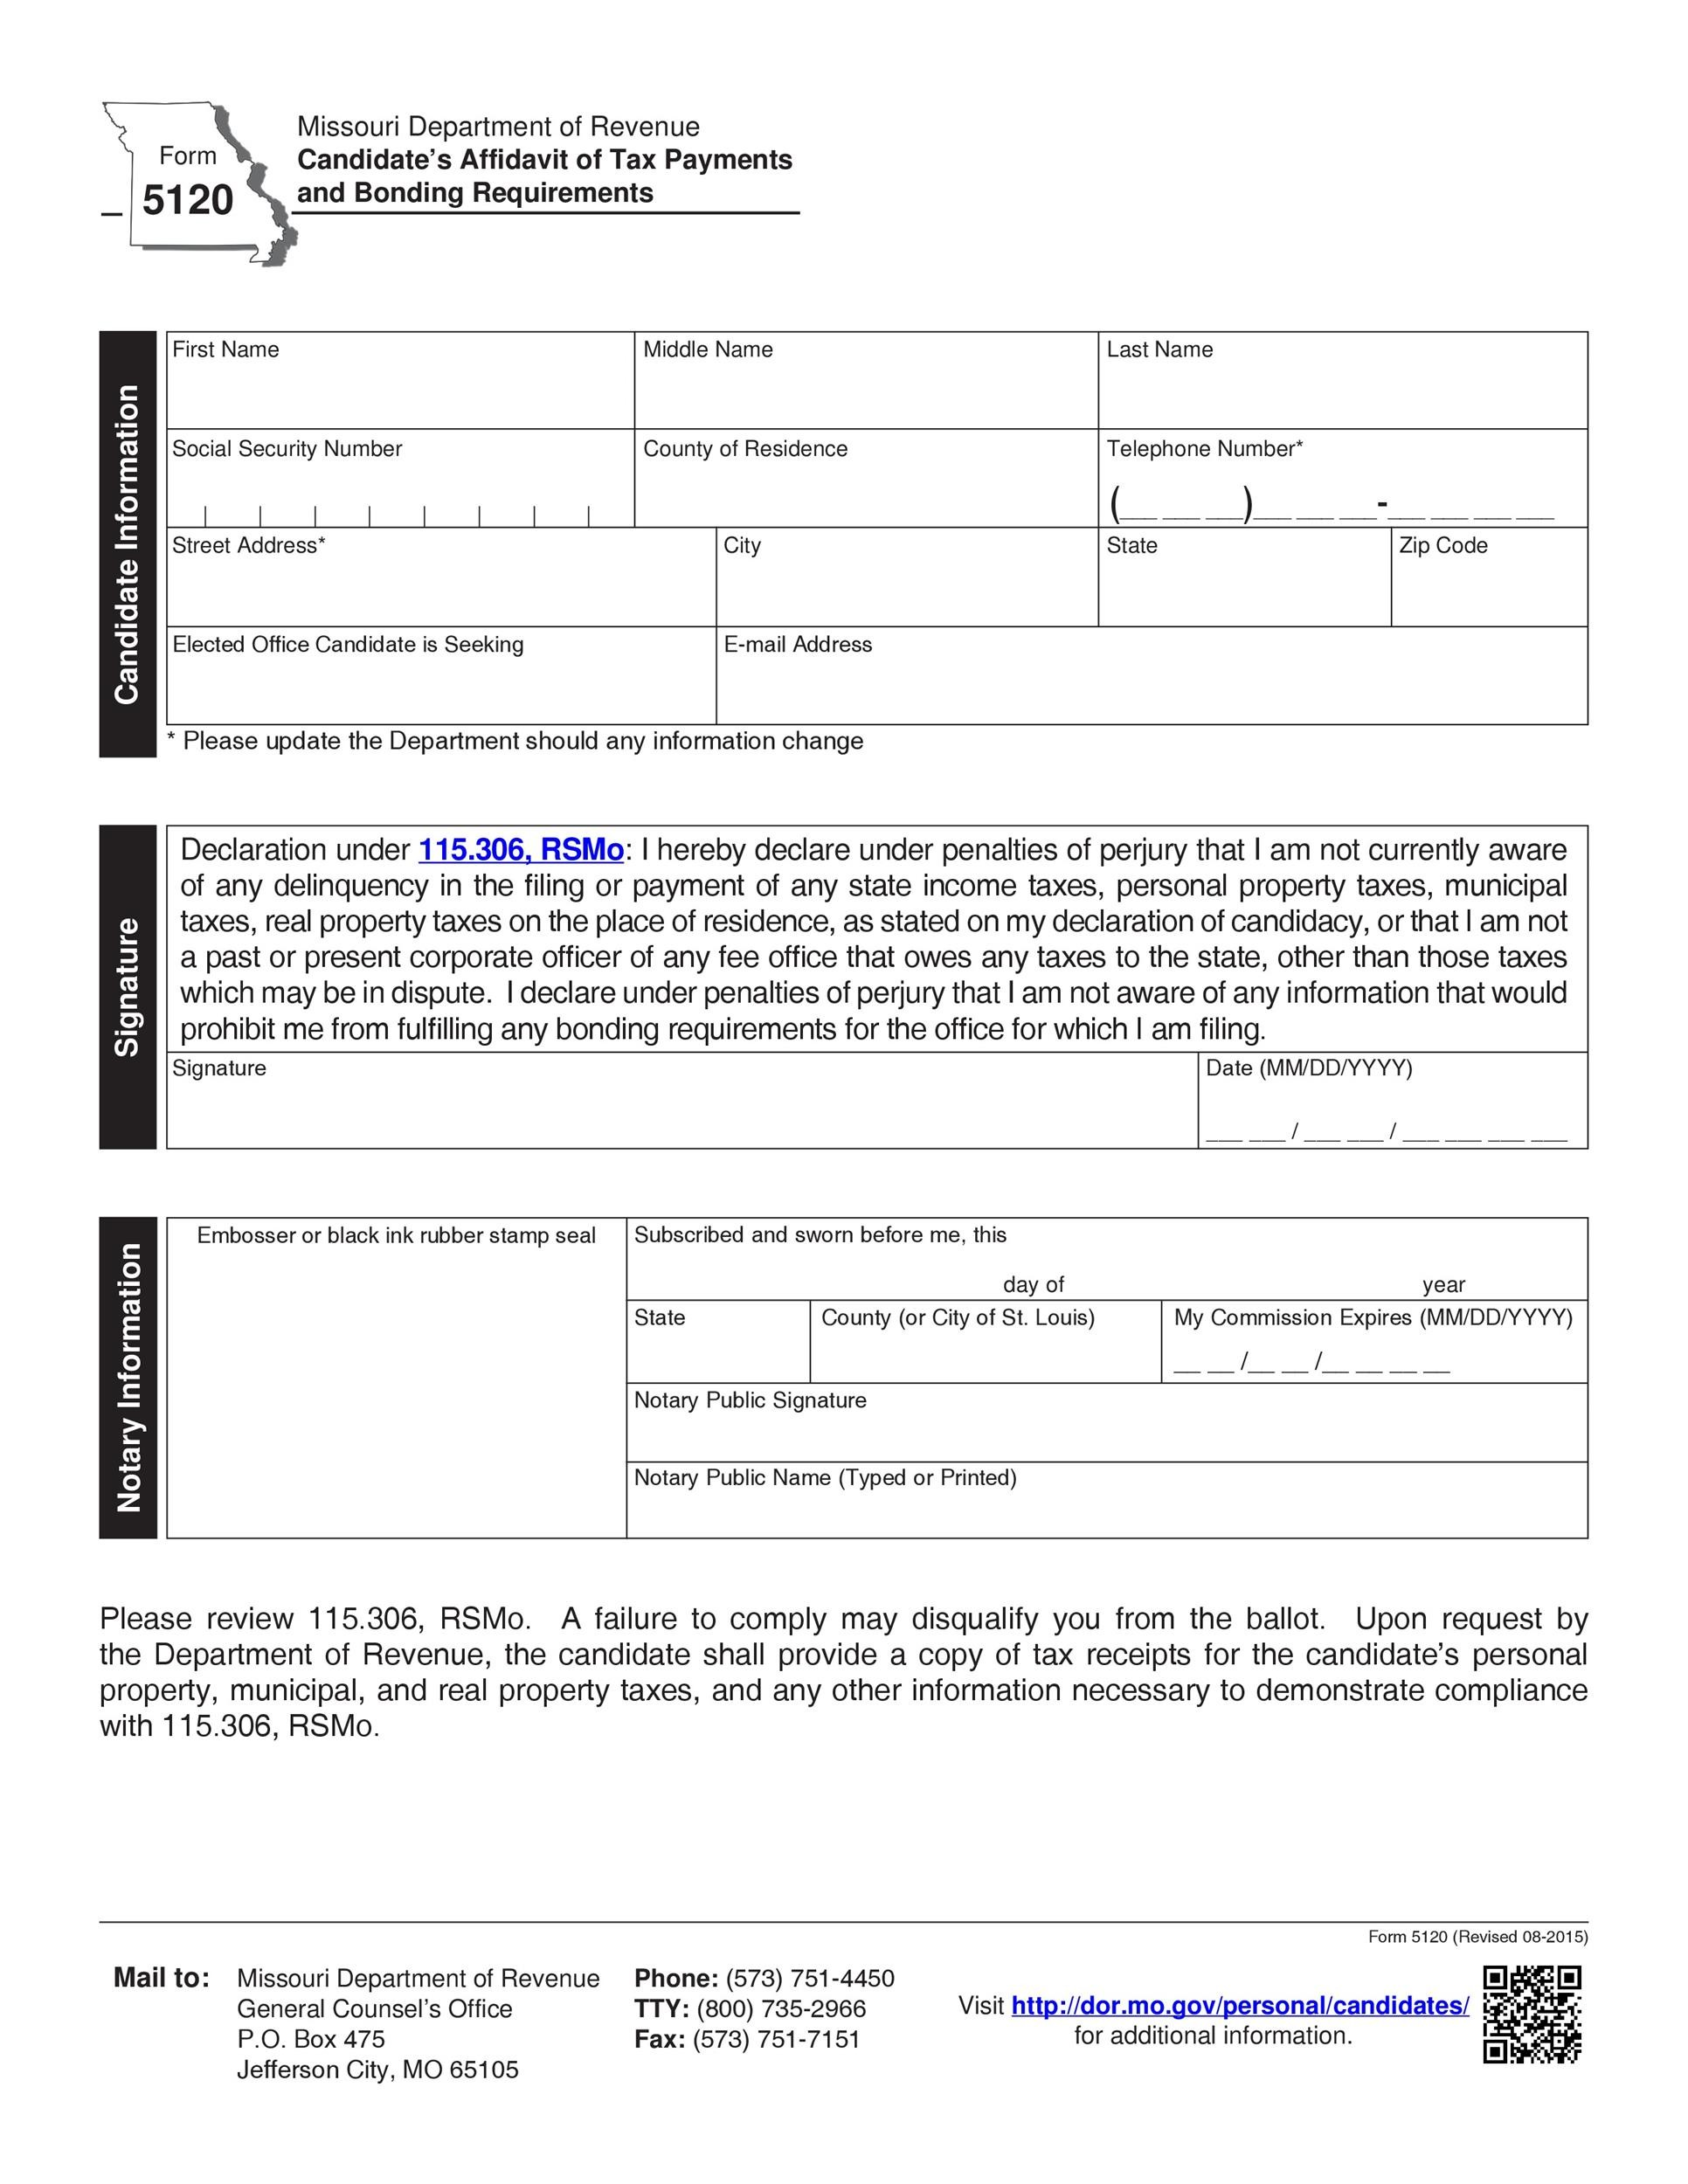 48 sample affidavit forms templates affidavit of support form printable affidavit form 06 thecheapjerseys Choice Image